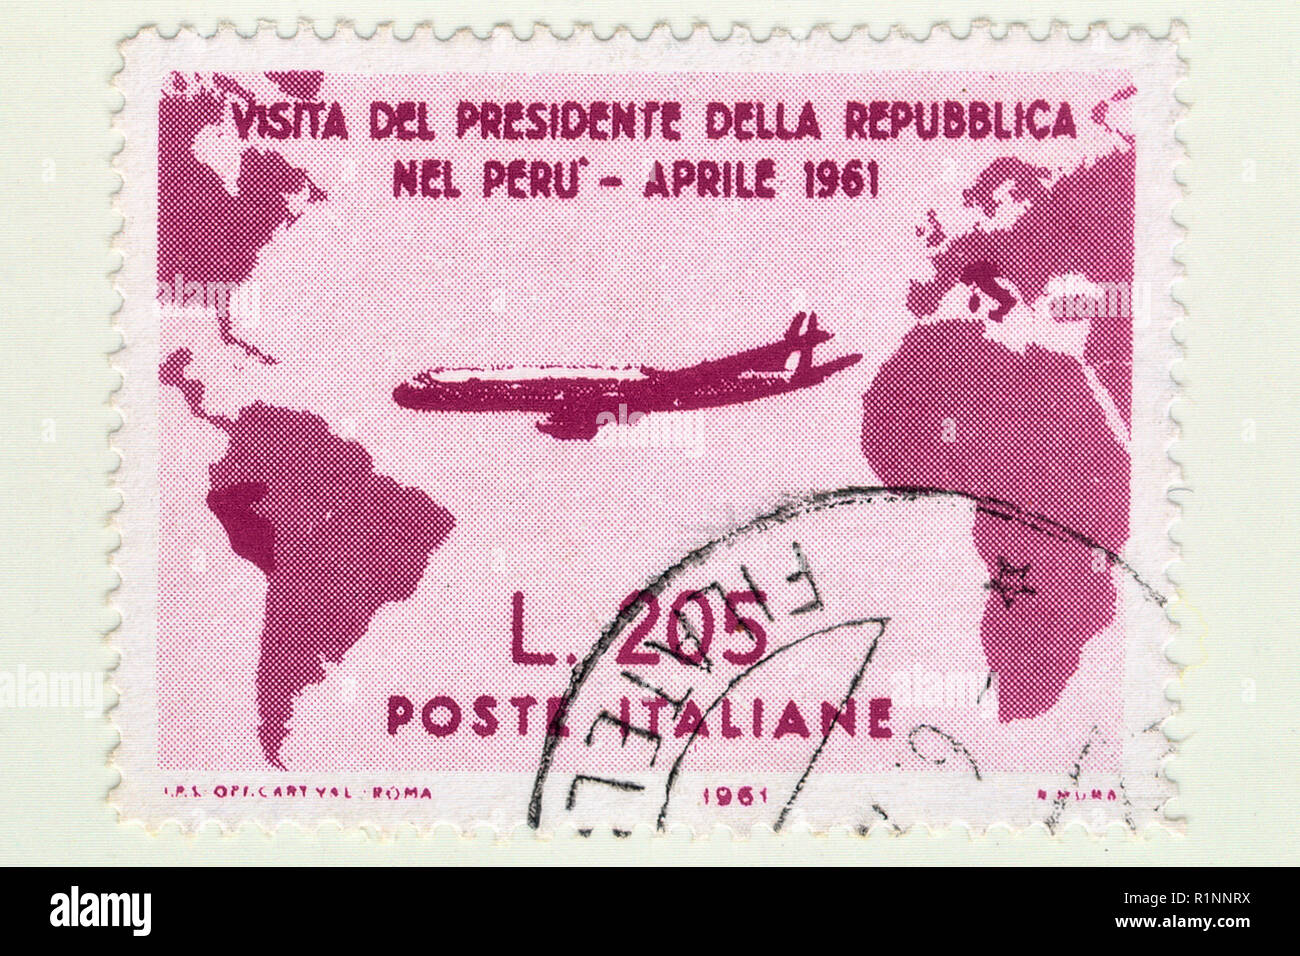 Italy - CIRCA 1961:A stamp printed in Italy, Rare used Italian stamp of Gronchi rose worth 205 Lire,commemorates the visit of Italian President Gronch - Stock Image